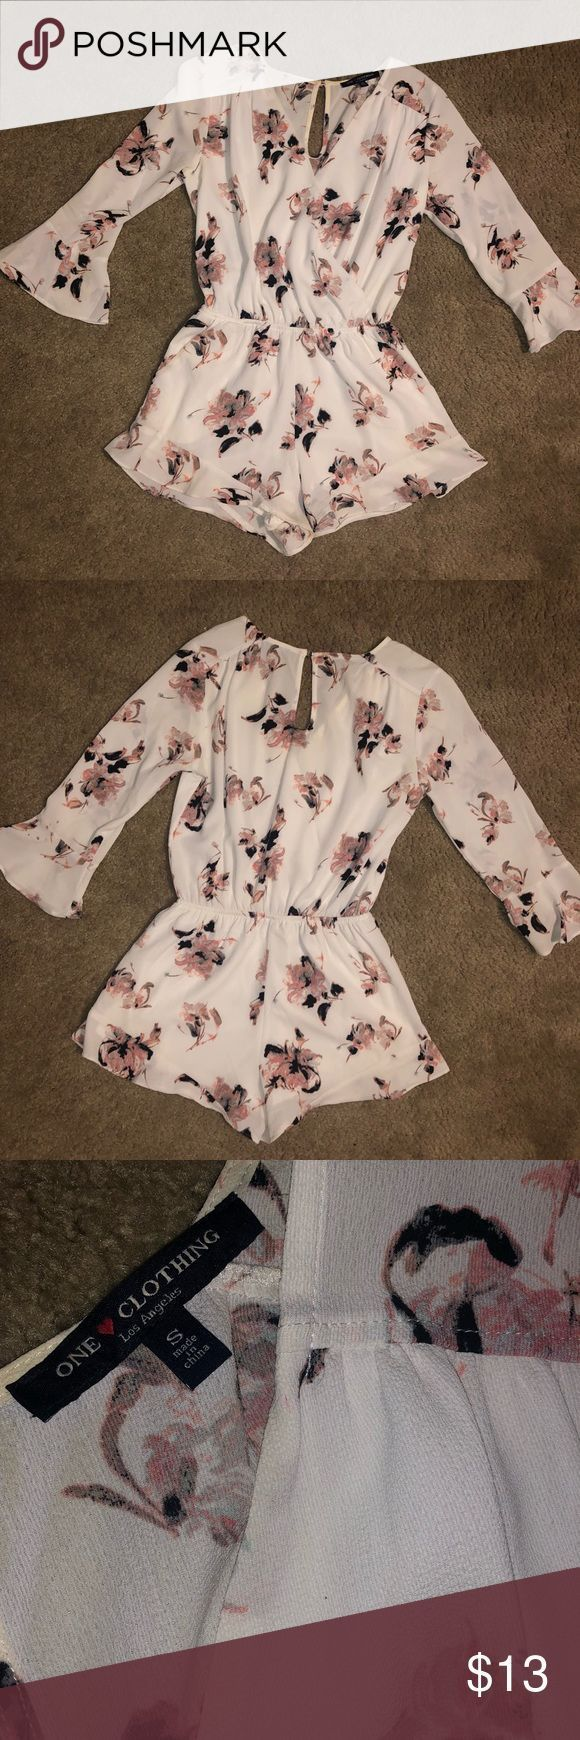 Floral Romper Dressy floral romper. Size small. Good condition Other   Floral R#Eyes